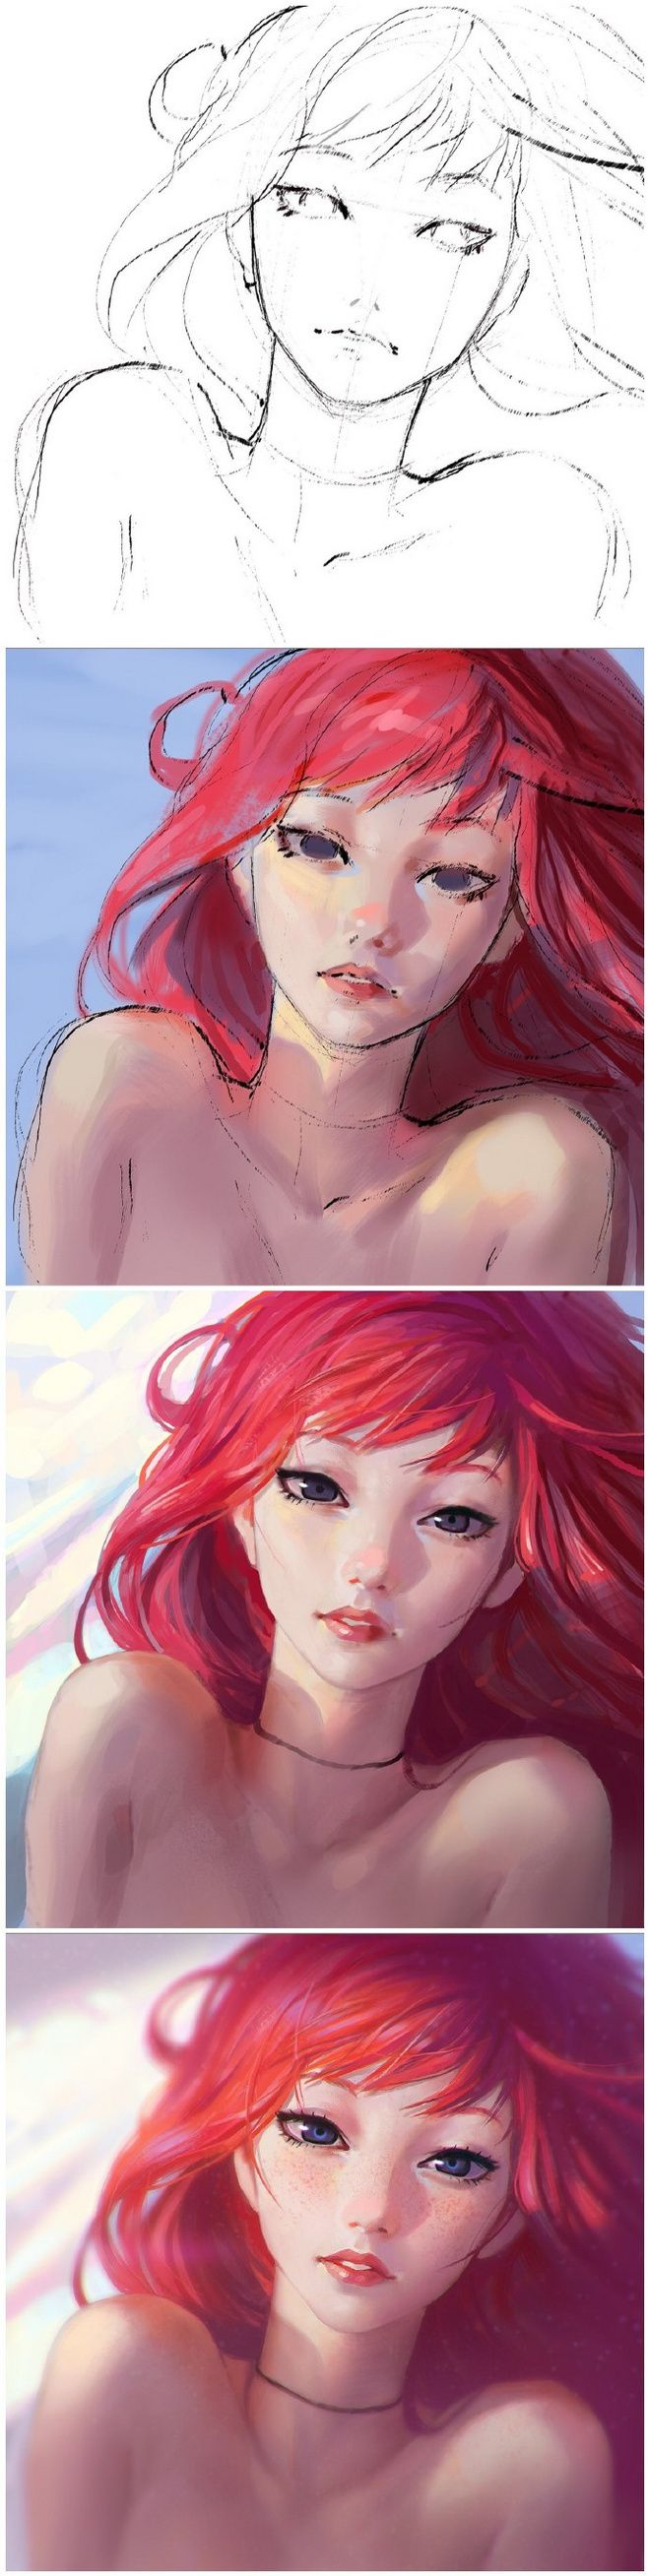 Kuvshinov IlyaGorgeous woman with red hair anime artLearn more about Wacom graphics tablets, go to Wacomtabletreviews.net